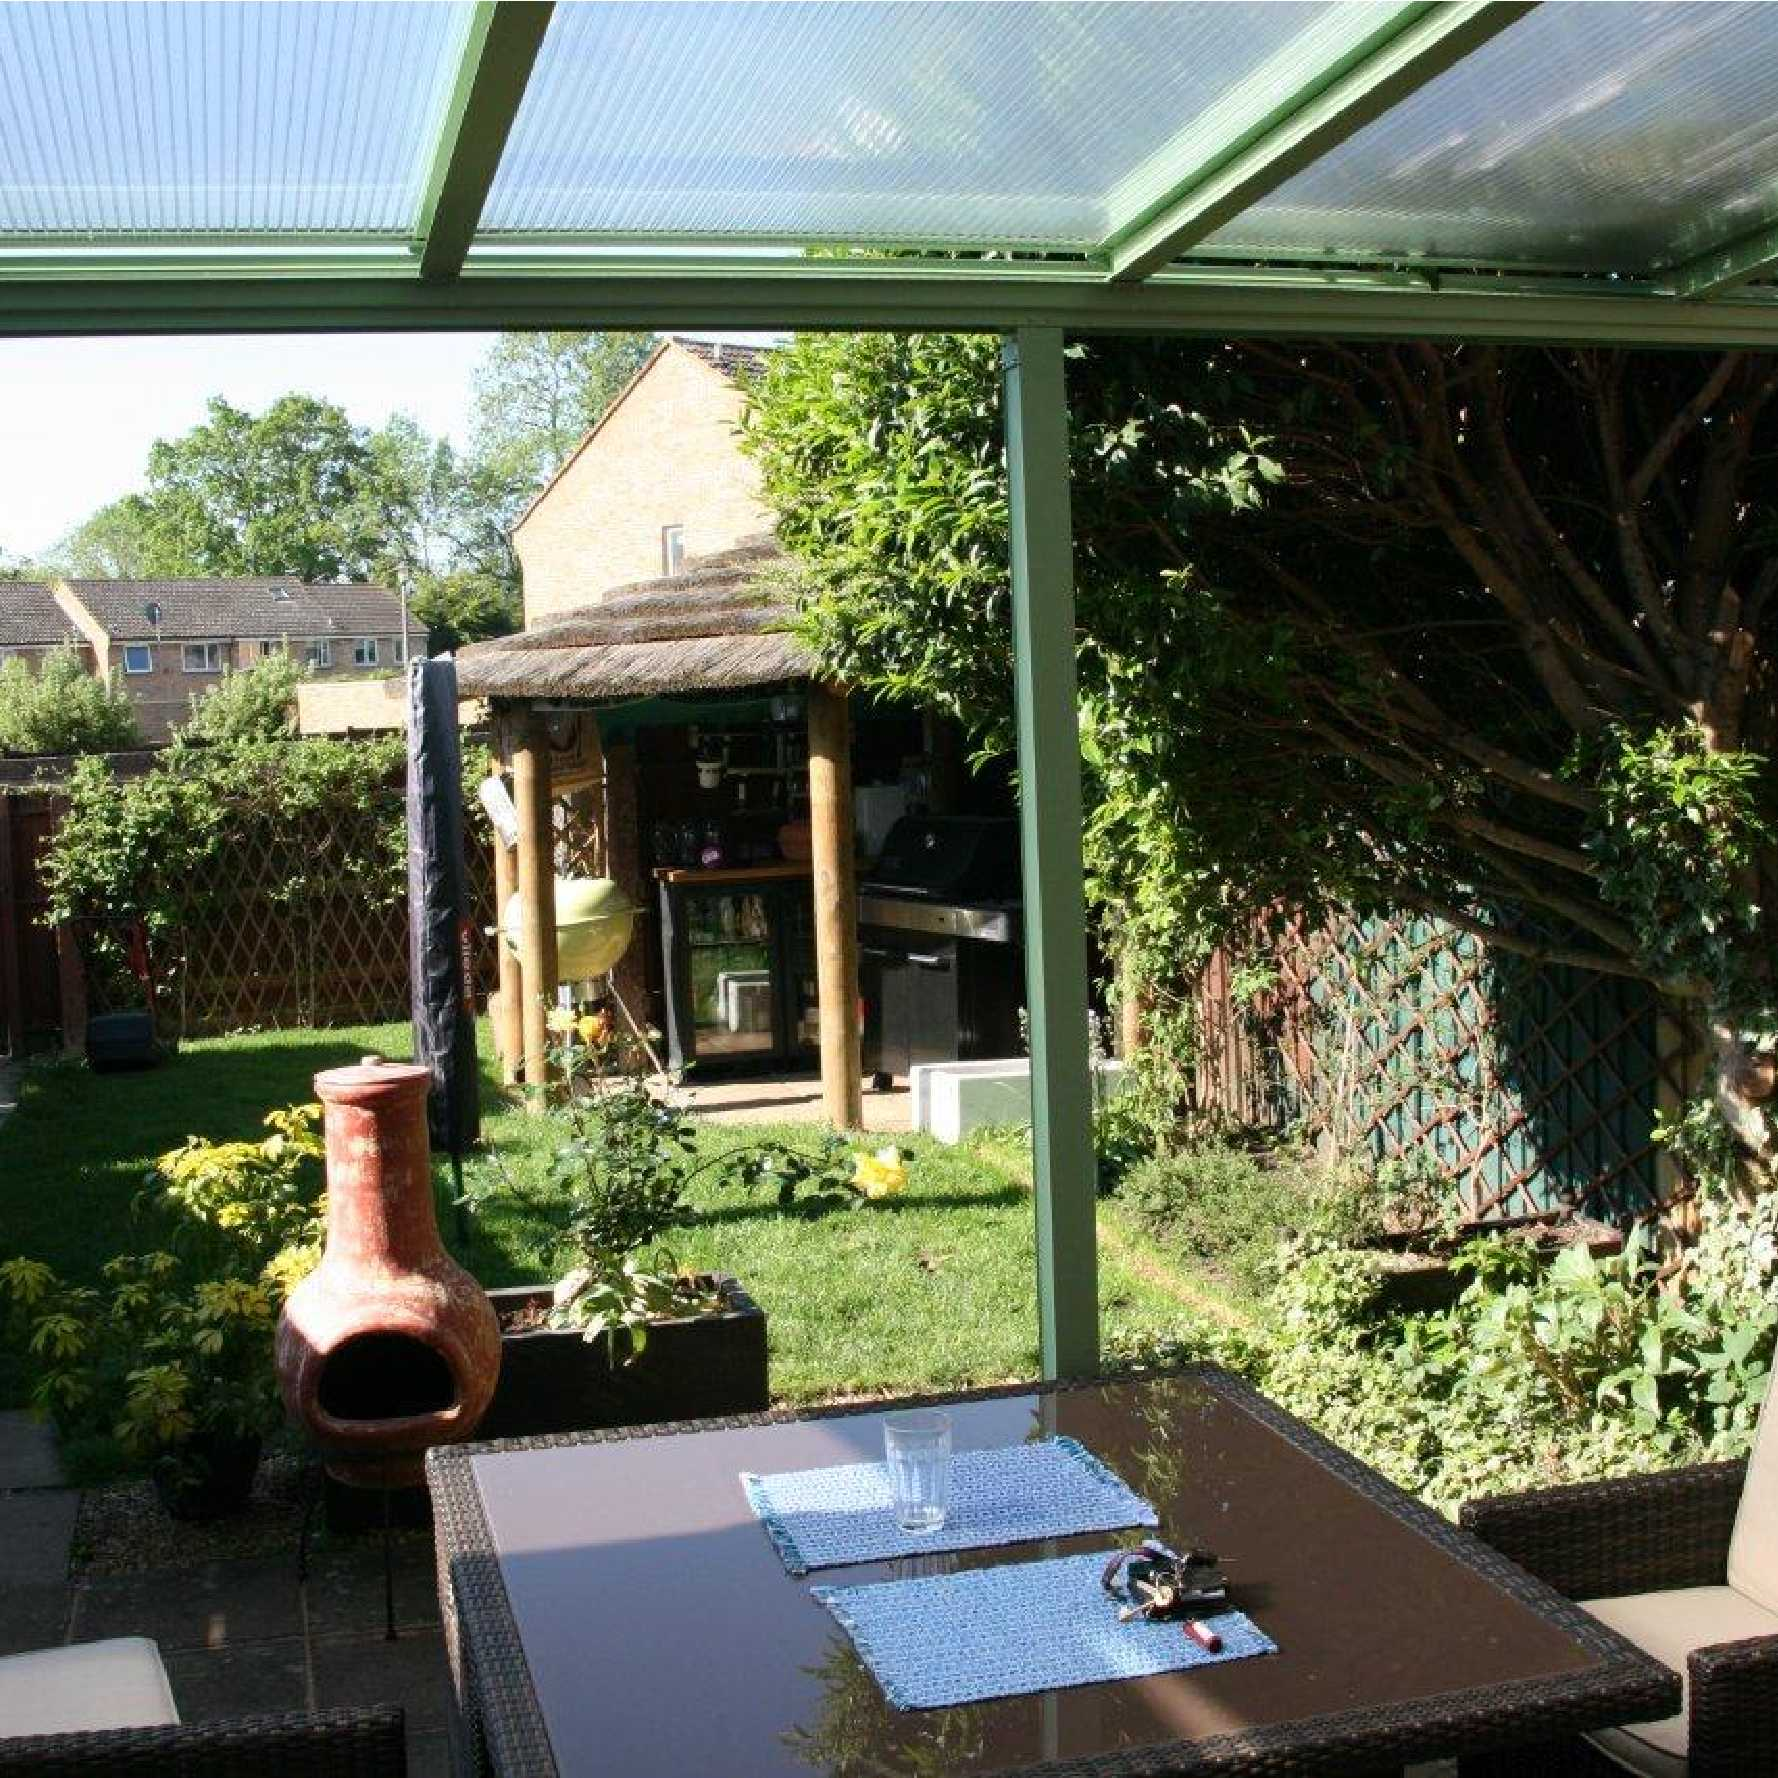 Affordable Omega Smart Lean-To Canopy with 16mm Polycarbonate Glazing - 9.9m (W) x 3.5m (P), (5) Supporting Posts